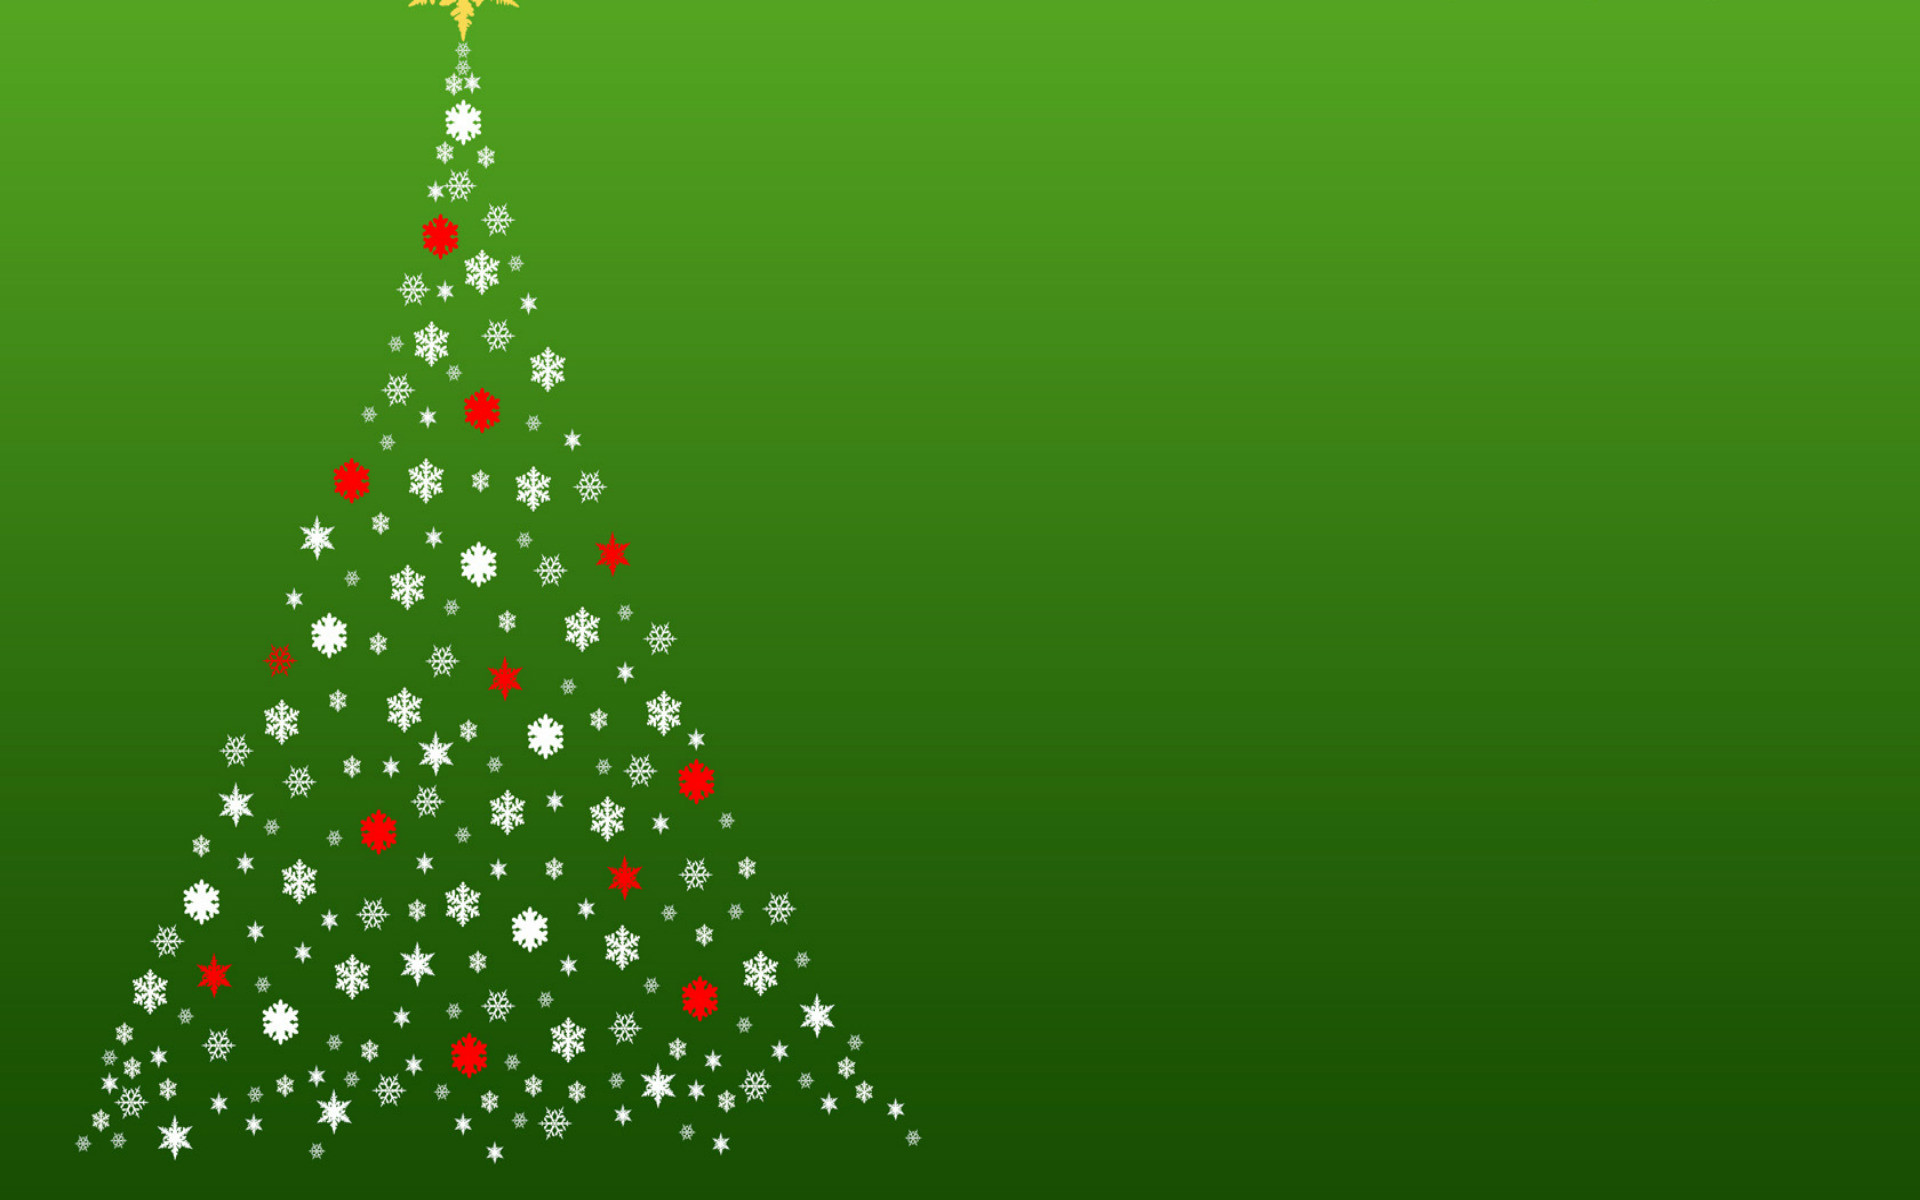 merry christmas background wallpapers (69+ background pictures)